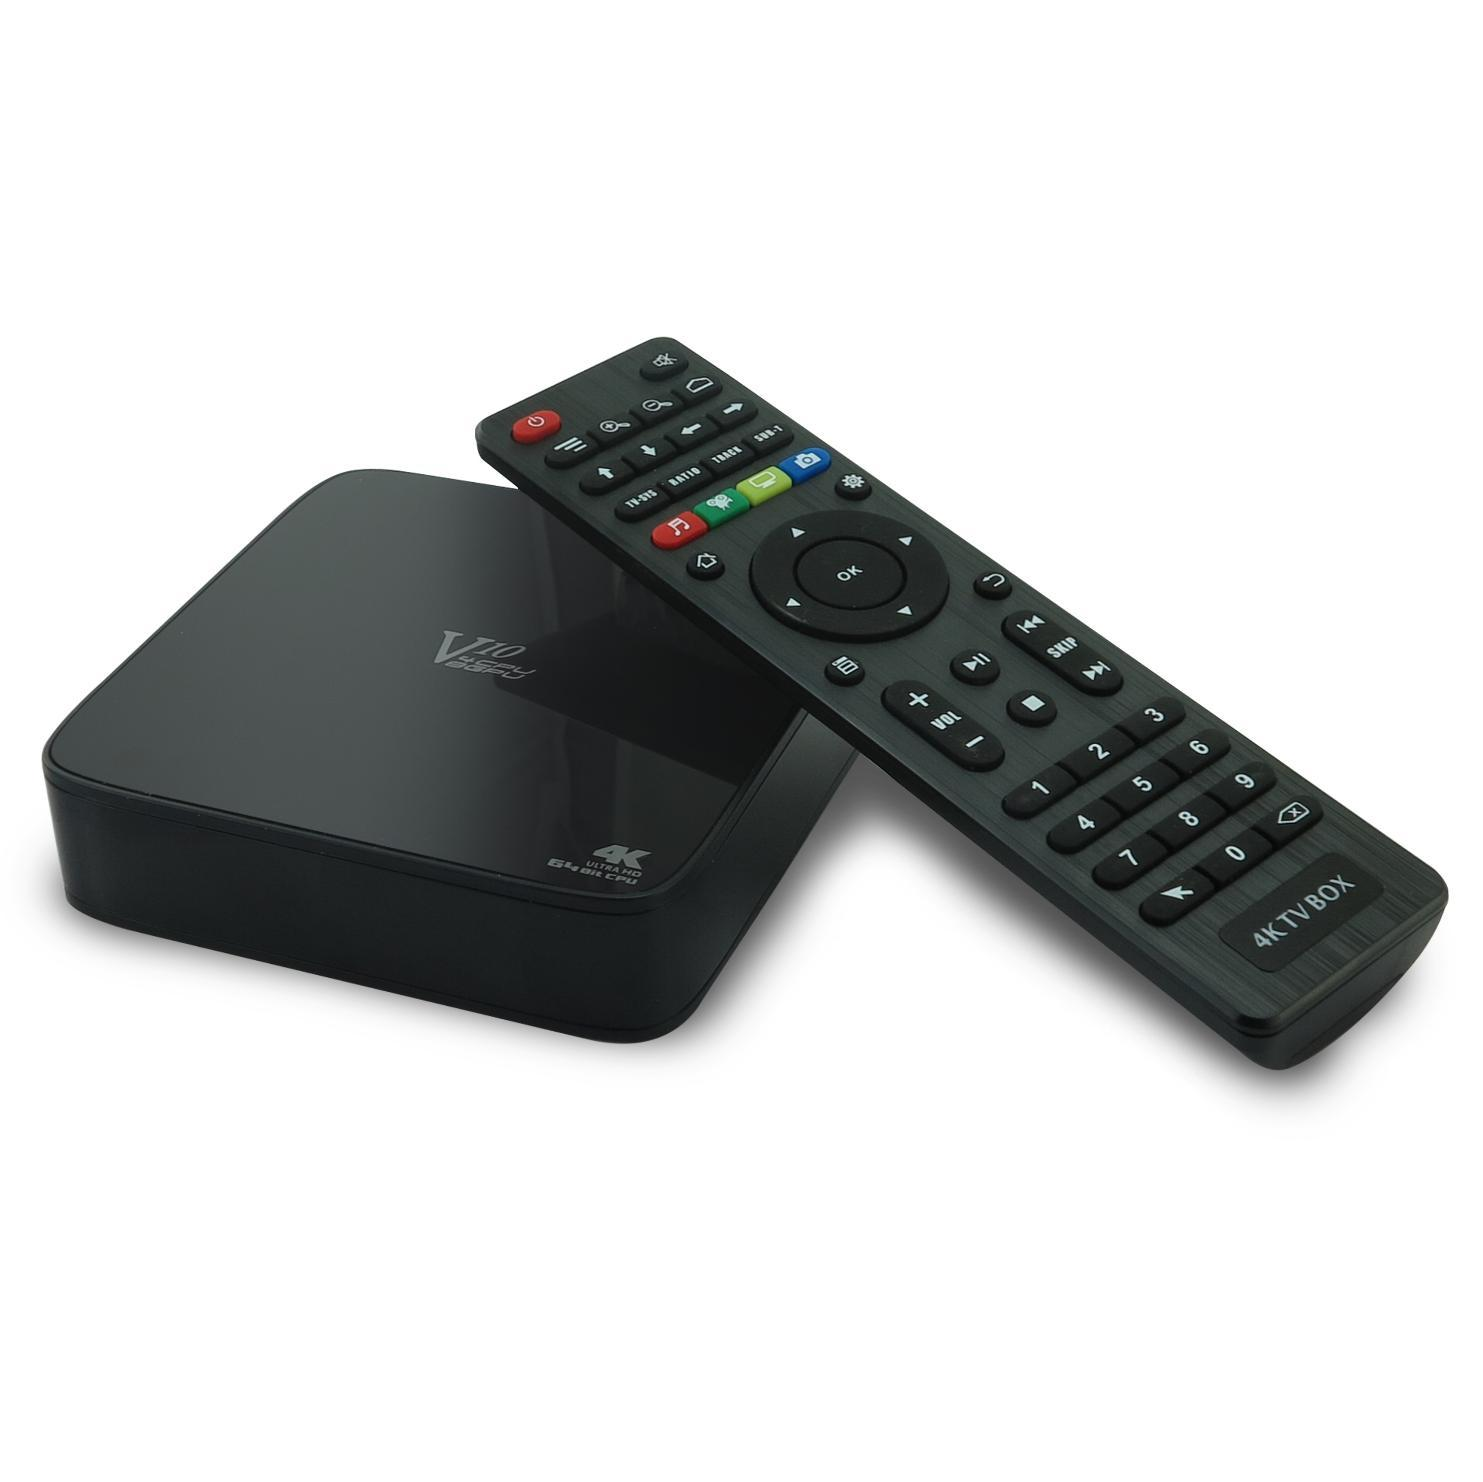 TLBB V10 Pro Streaming TV box